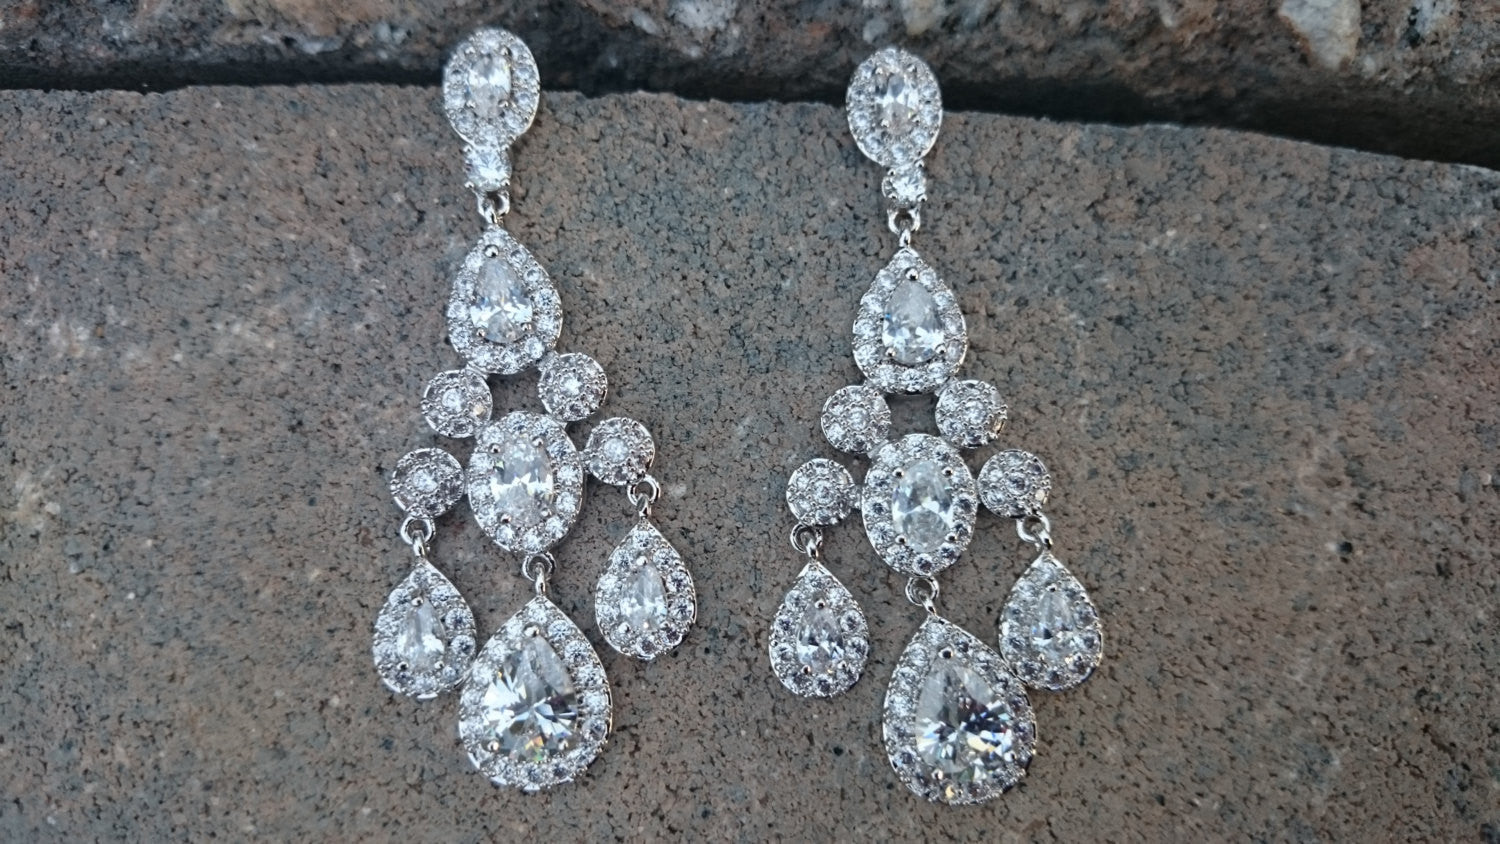 1dbadb27ef6eb Bridal Earrings, CZ Bridal Chandelier Earrings, Pageant Earrings, Statement  Luxury Earrings, Pear Oval Drop Dangle Earrings, Bridesmaid Gift